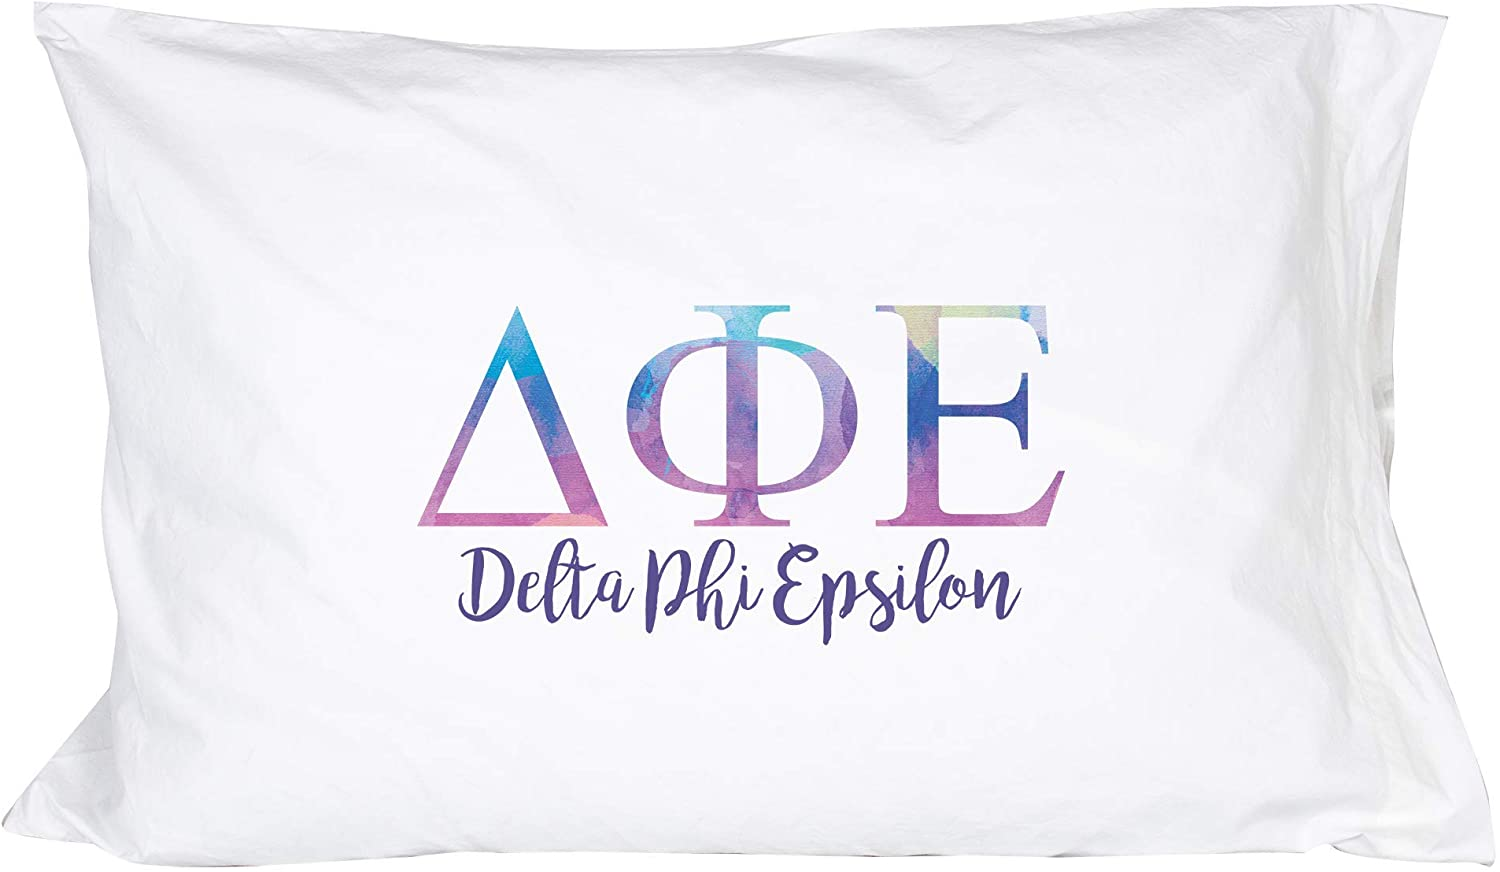 Alpha Omicron Pi aoii Sorority Floral Letters with Founding Year Pillowcase 300 Thread 100/% Cotton Count